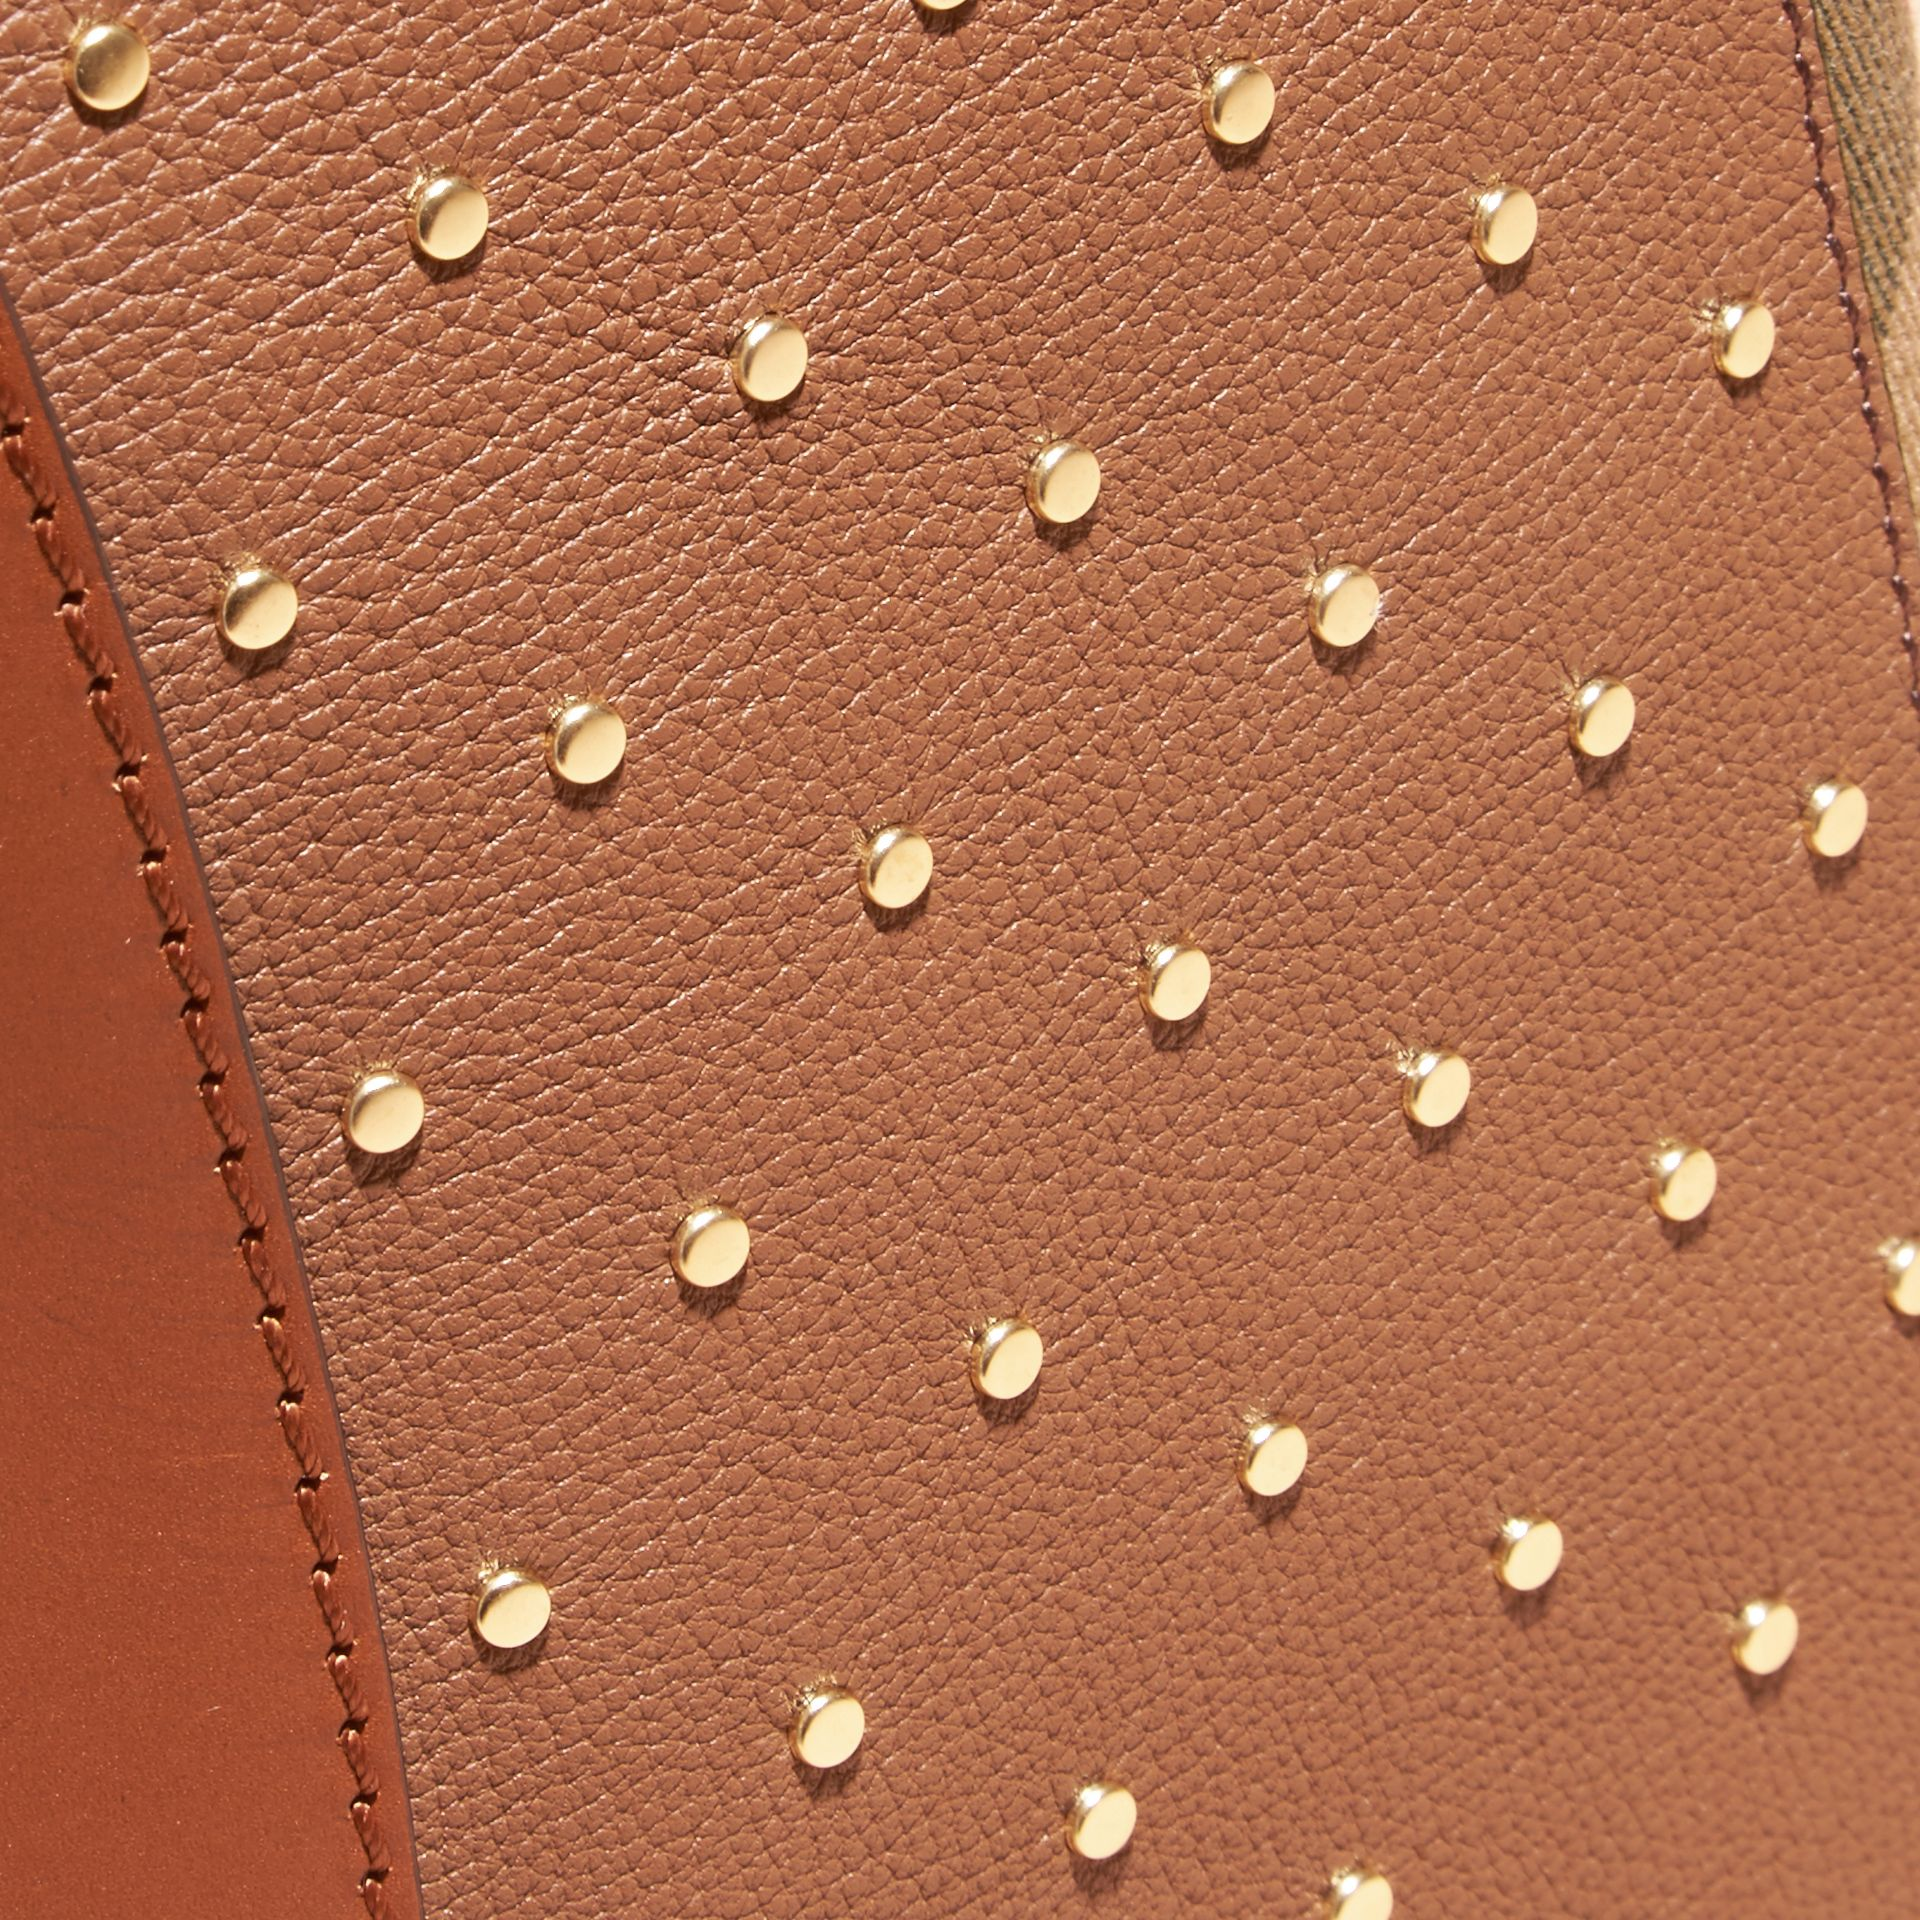 Tan Riveted Leather and House Check Clutch Bag Tan - gallery image 2